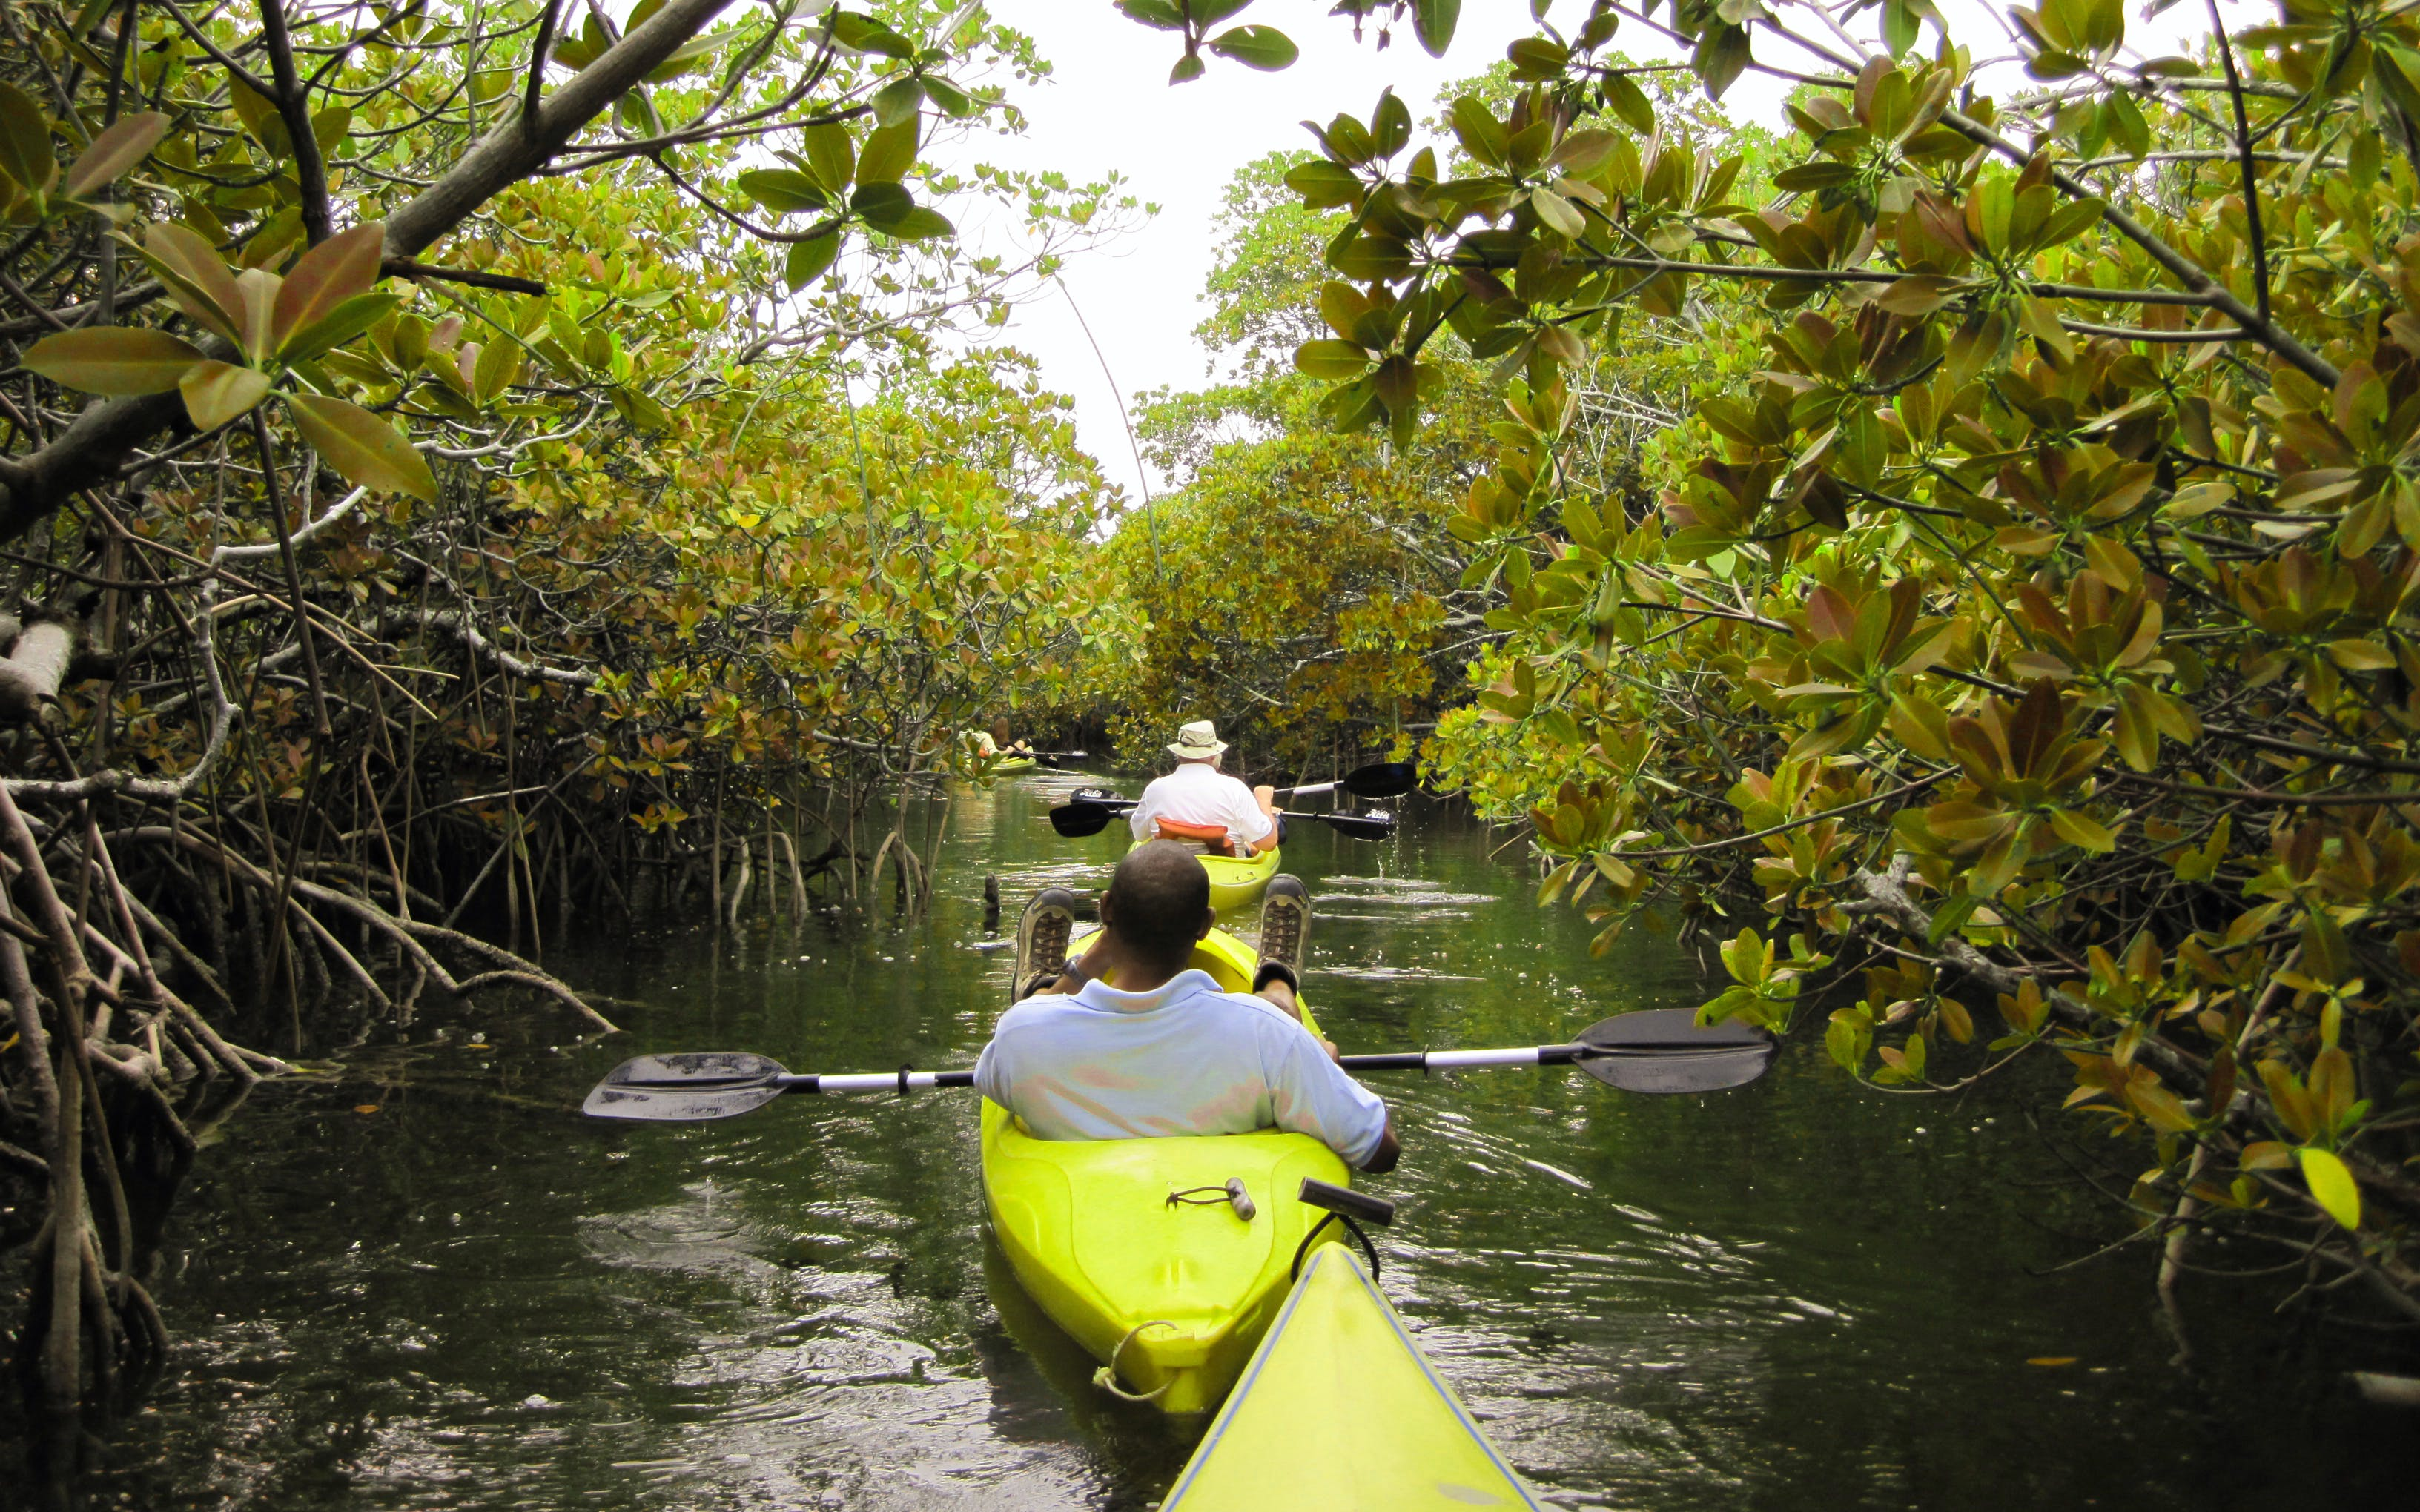 Kayaking at Pulan Ubin - 5 day Singpaore itinerary